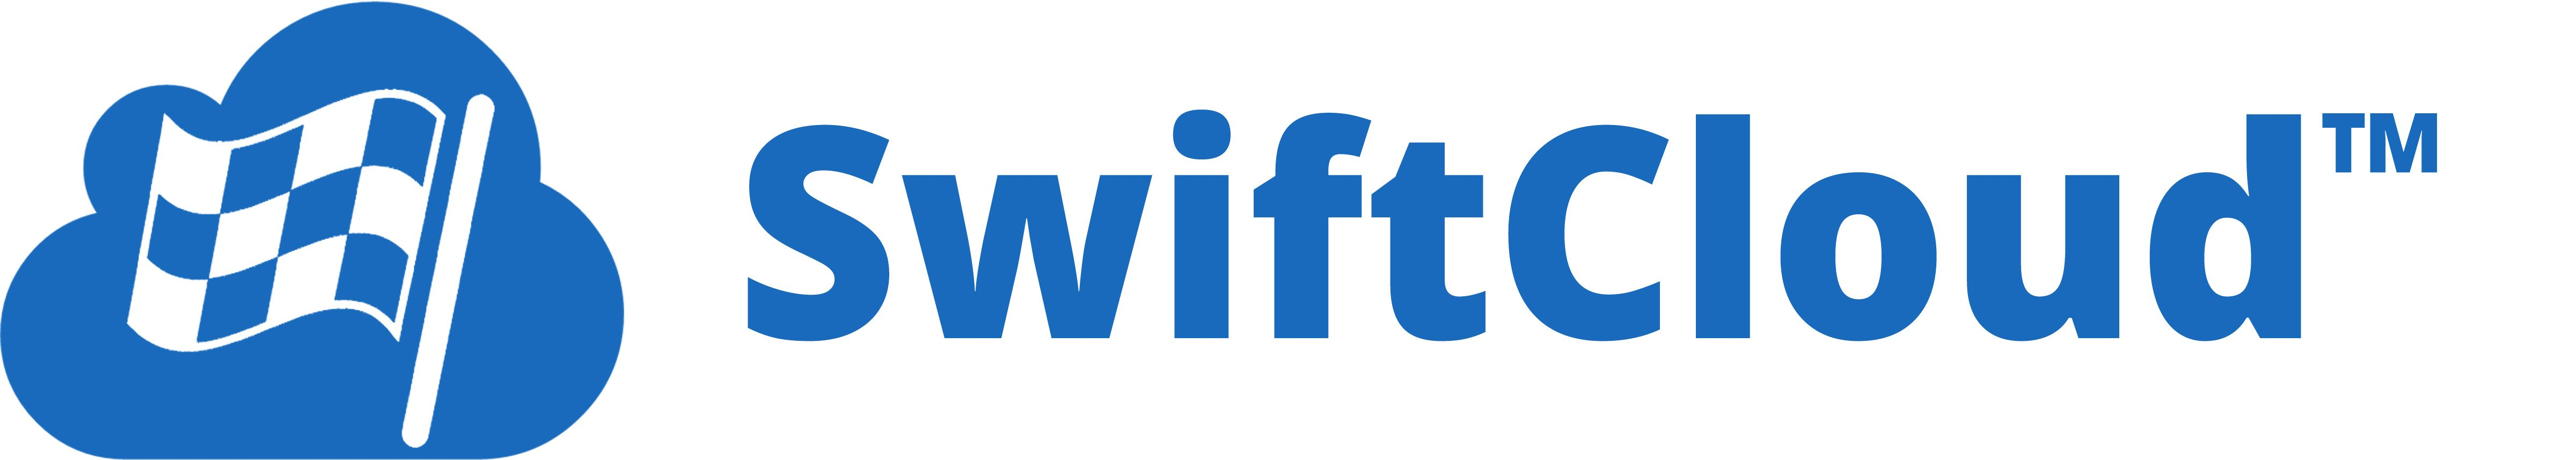 SwiftCloud Logo Over White